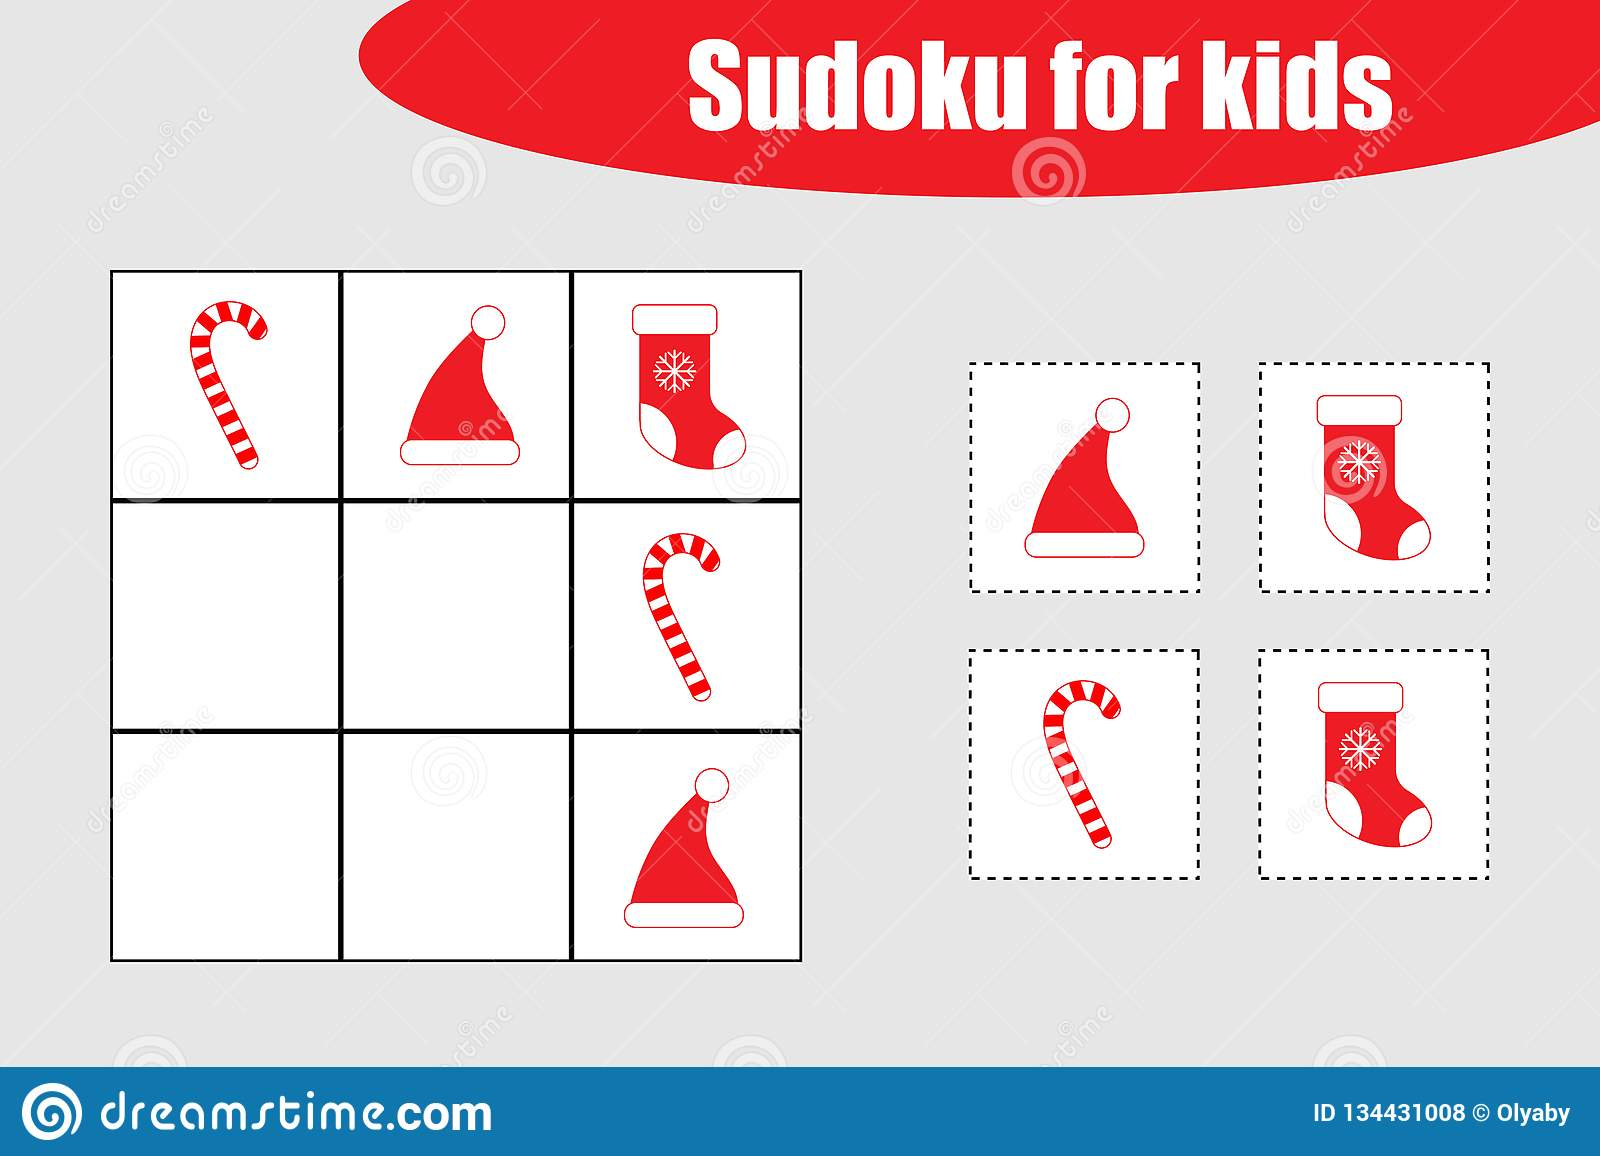 First Sudoku Game With Christmas Pictures For Children